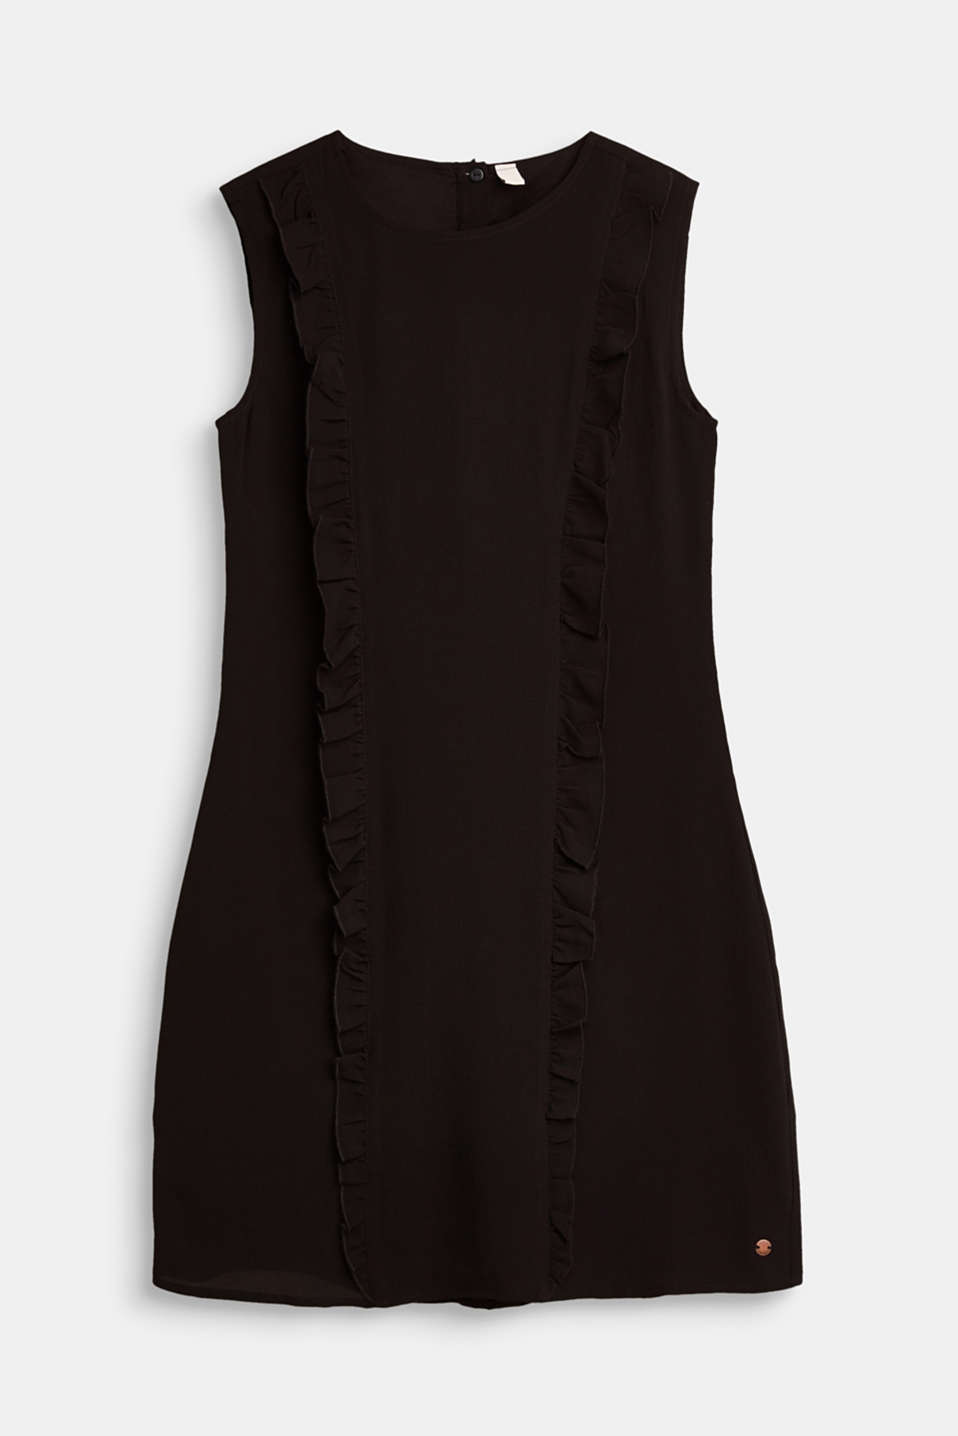 Esprit - Formal crêpe dress with frills